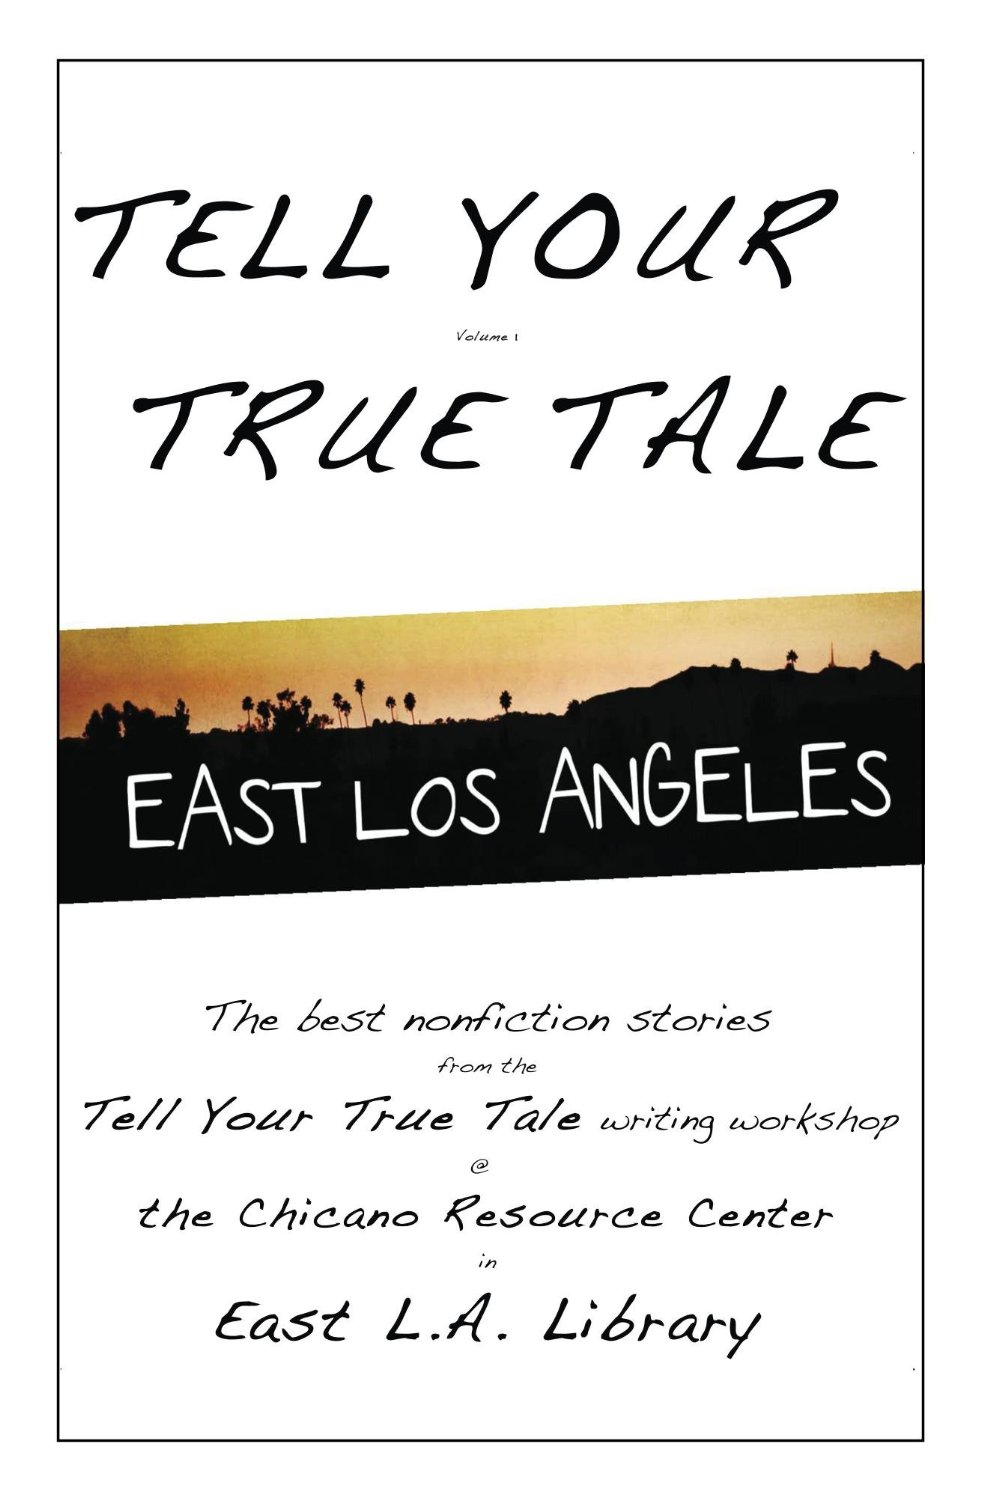 Tell Your True Tale East Los Angeles volume 1